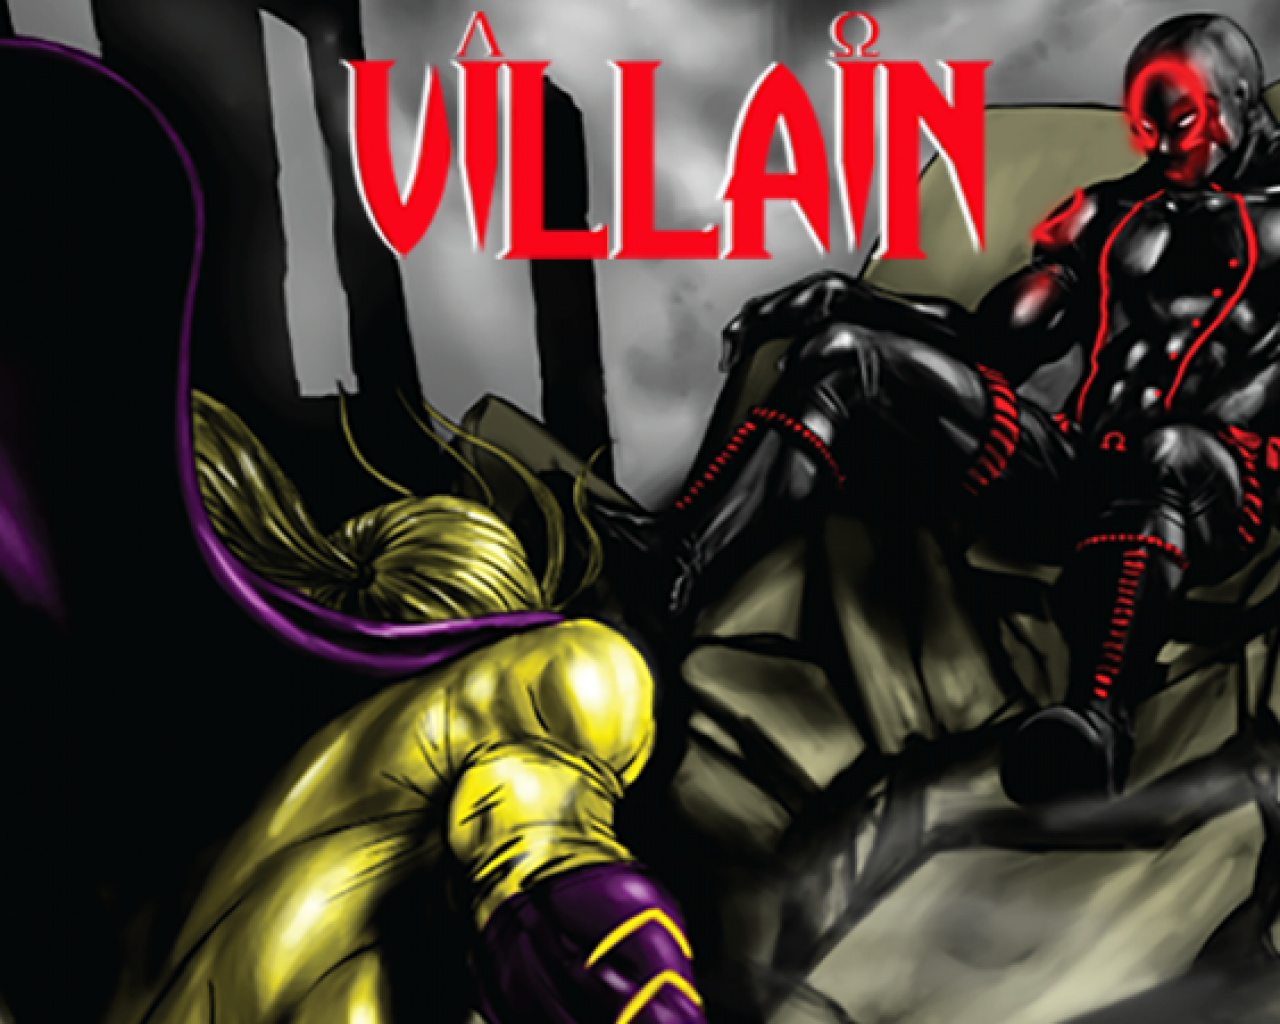 Preview Image 1 for Villain